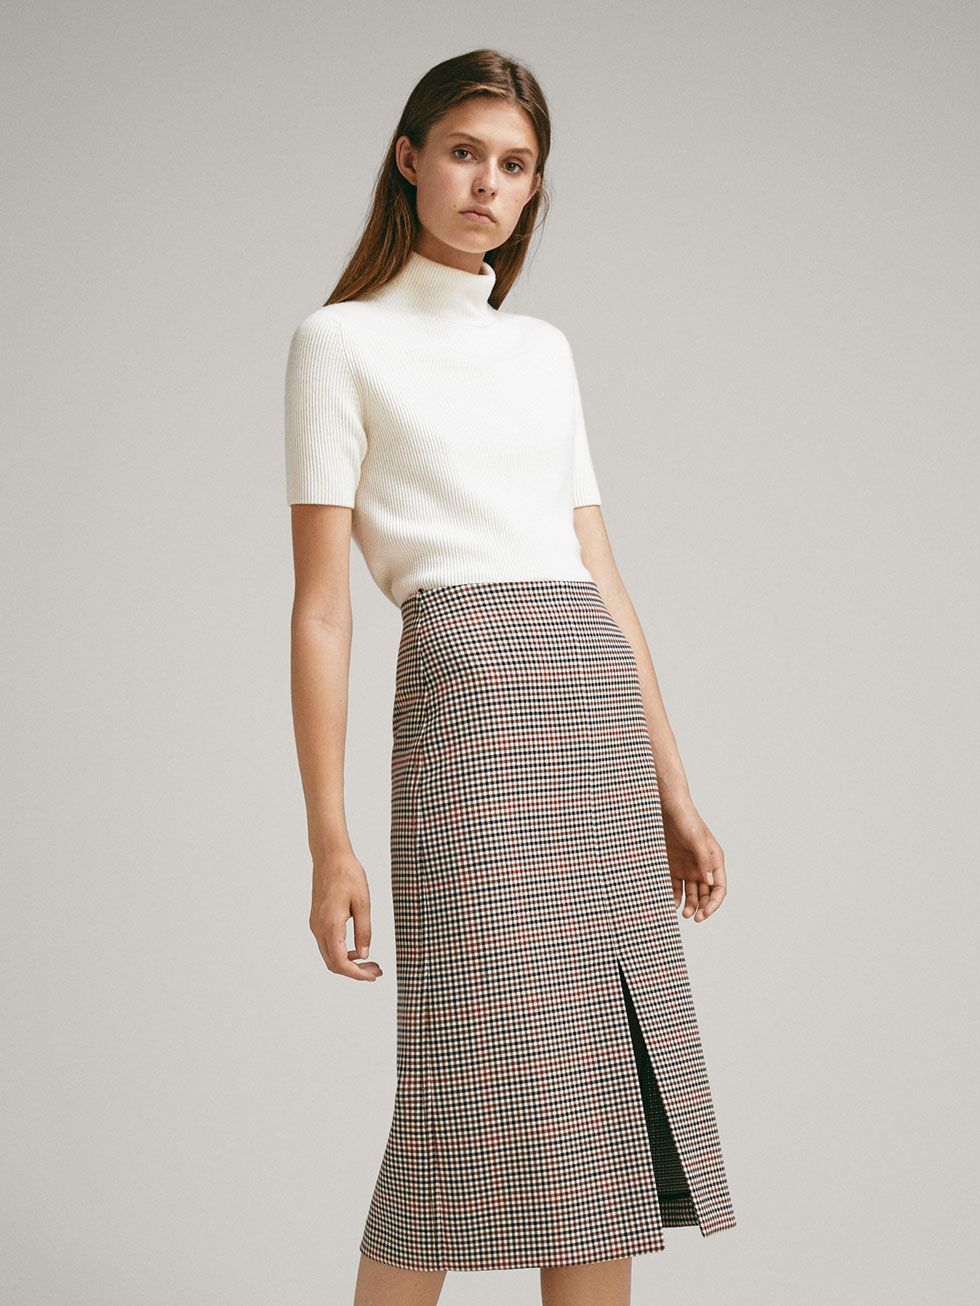 dd44fd4f79 CHECK WOOL SKIRT WITH FRONT SLIT - Women - Massimo Dutti | 2018/2019 ...